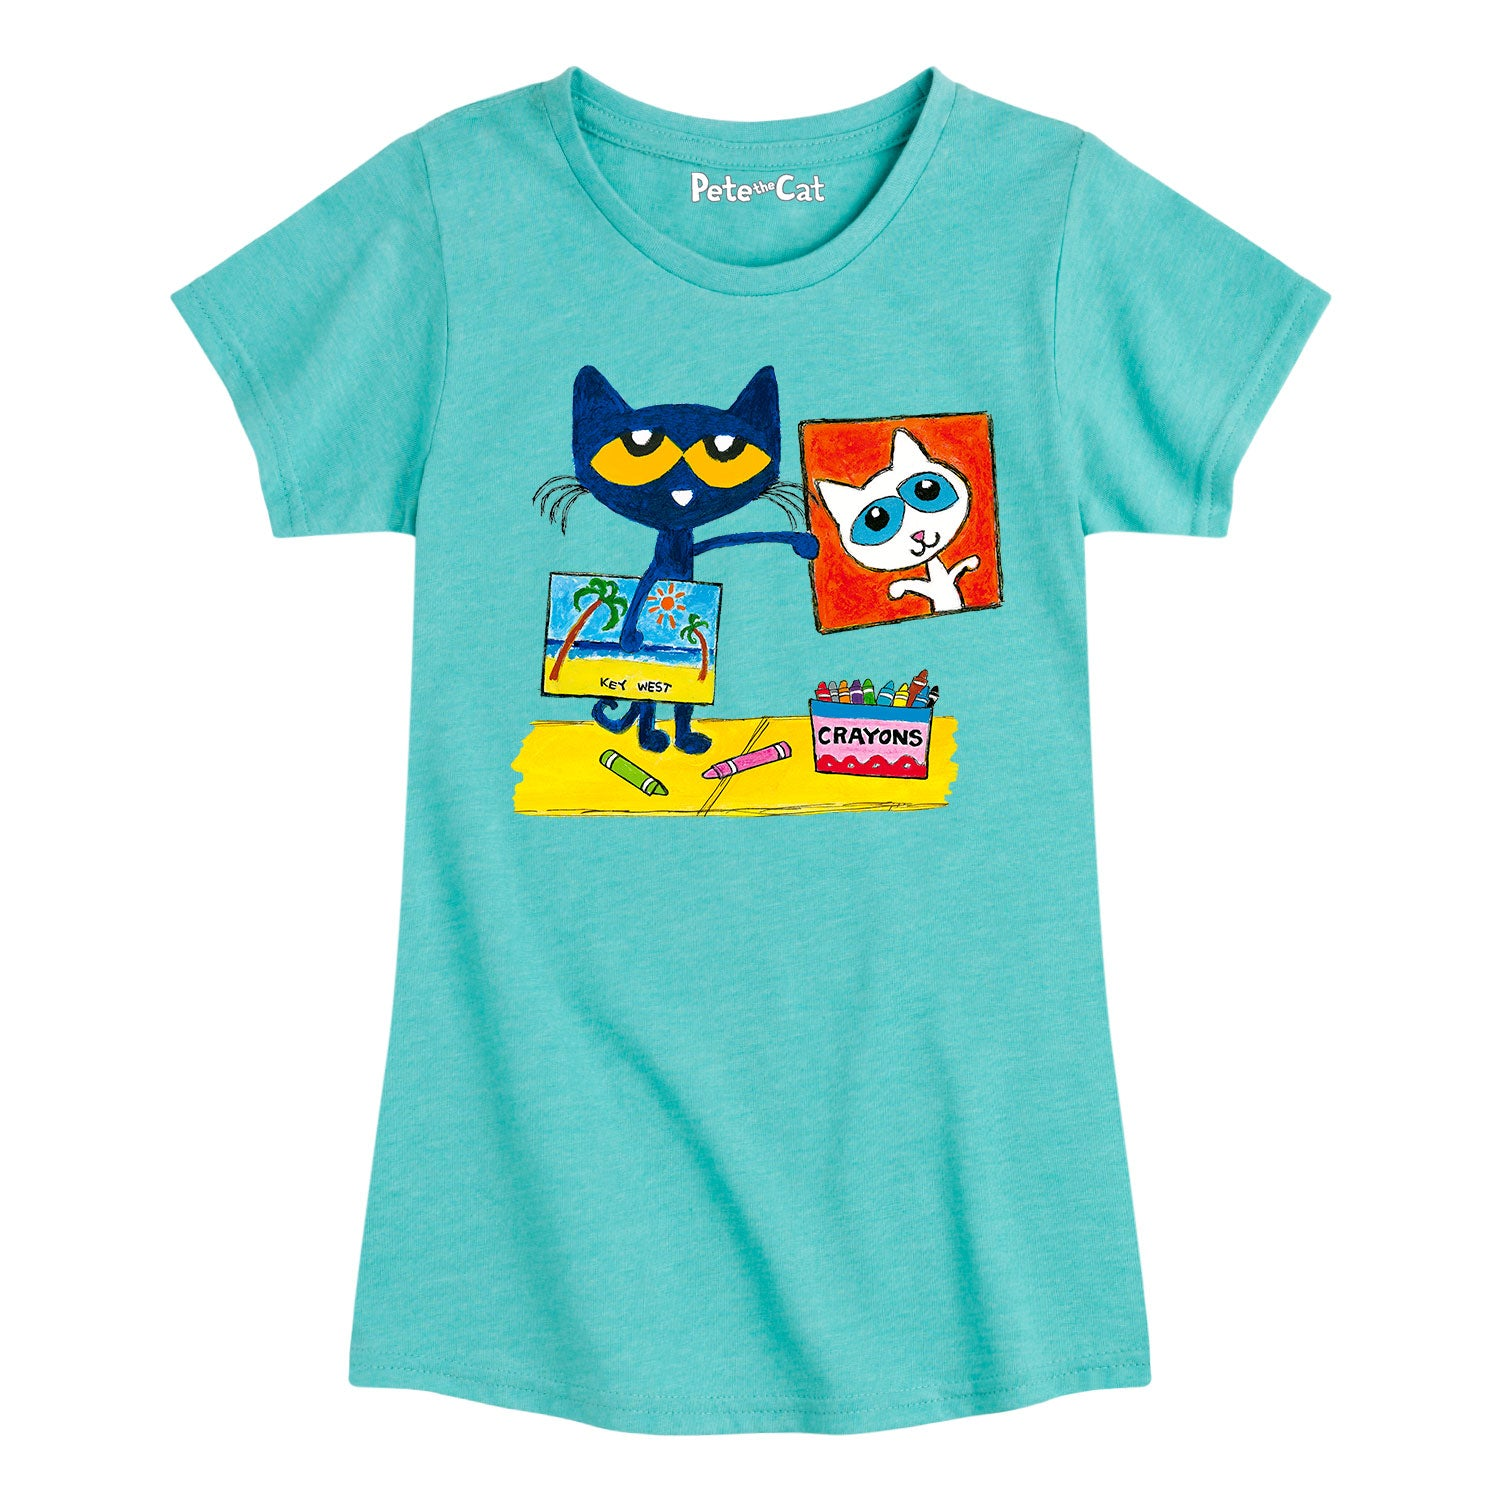 Pete Crayon Drawings - Youth & Toddler Girls Short Sleeve T-Shirt